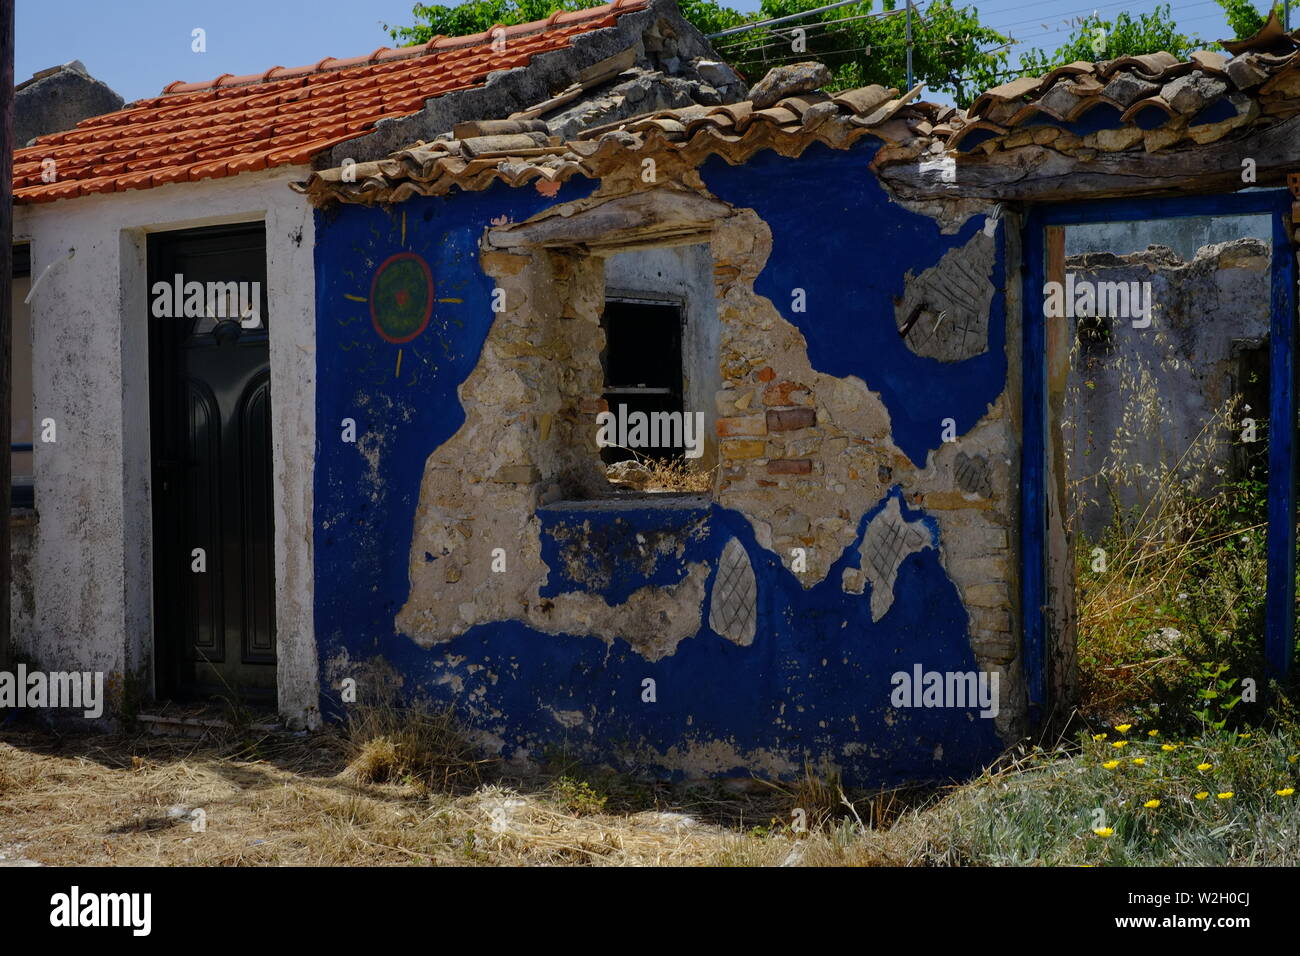 Artistic designed blue graffiti on an old/new house situated in Afionis Corfu - Stock Image